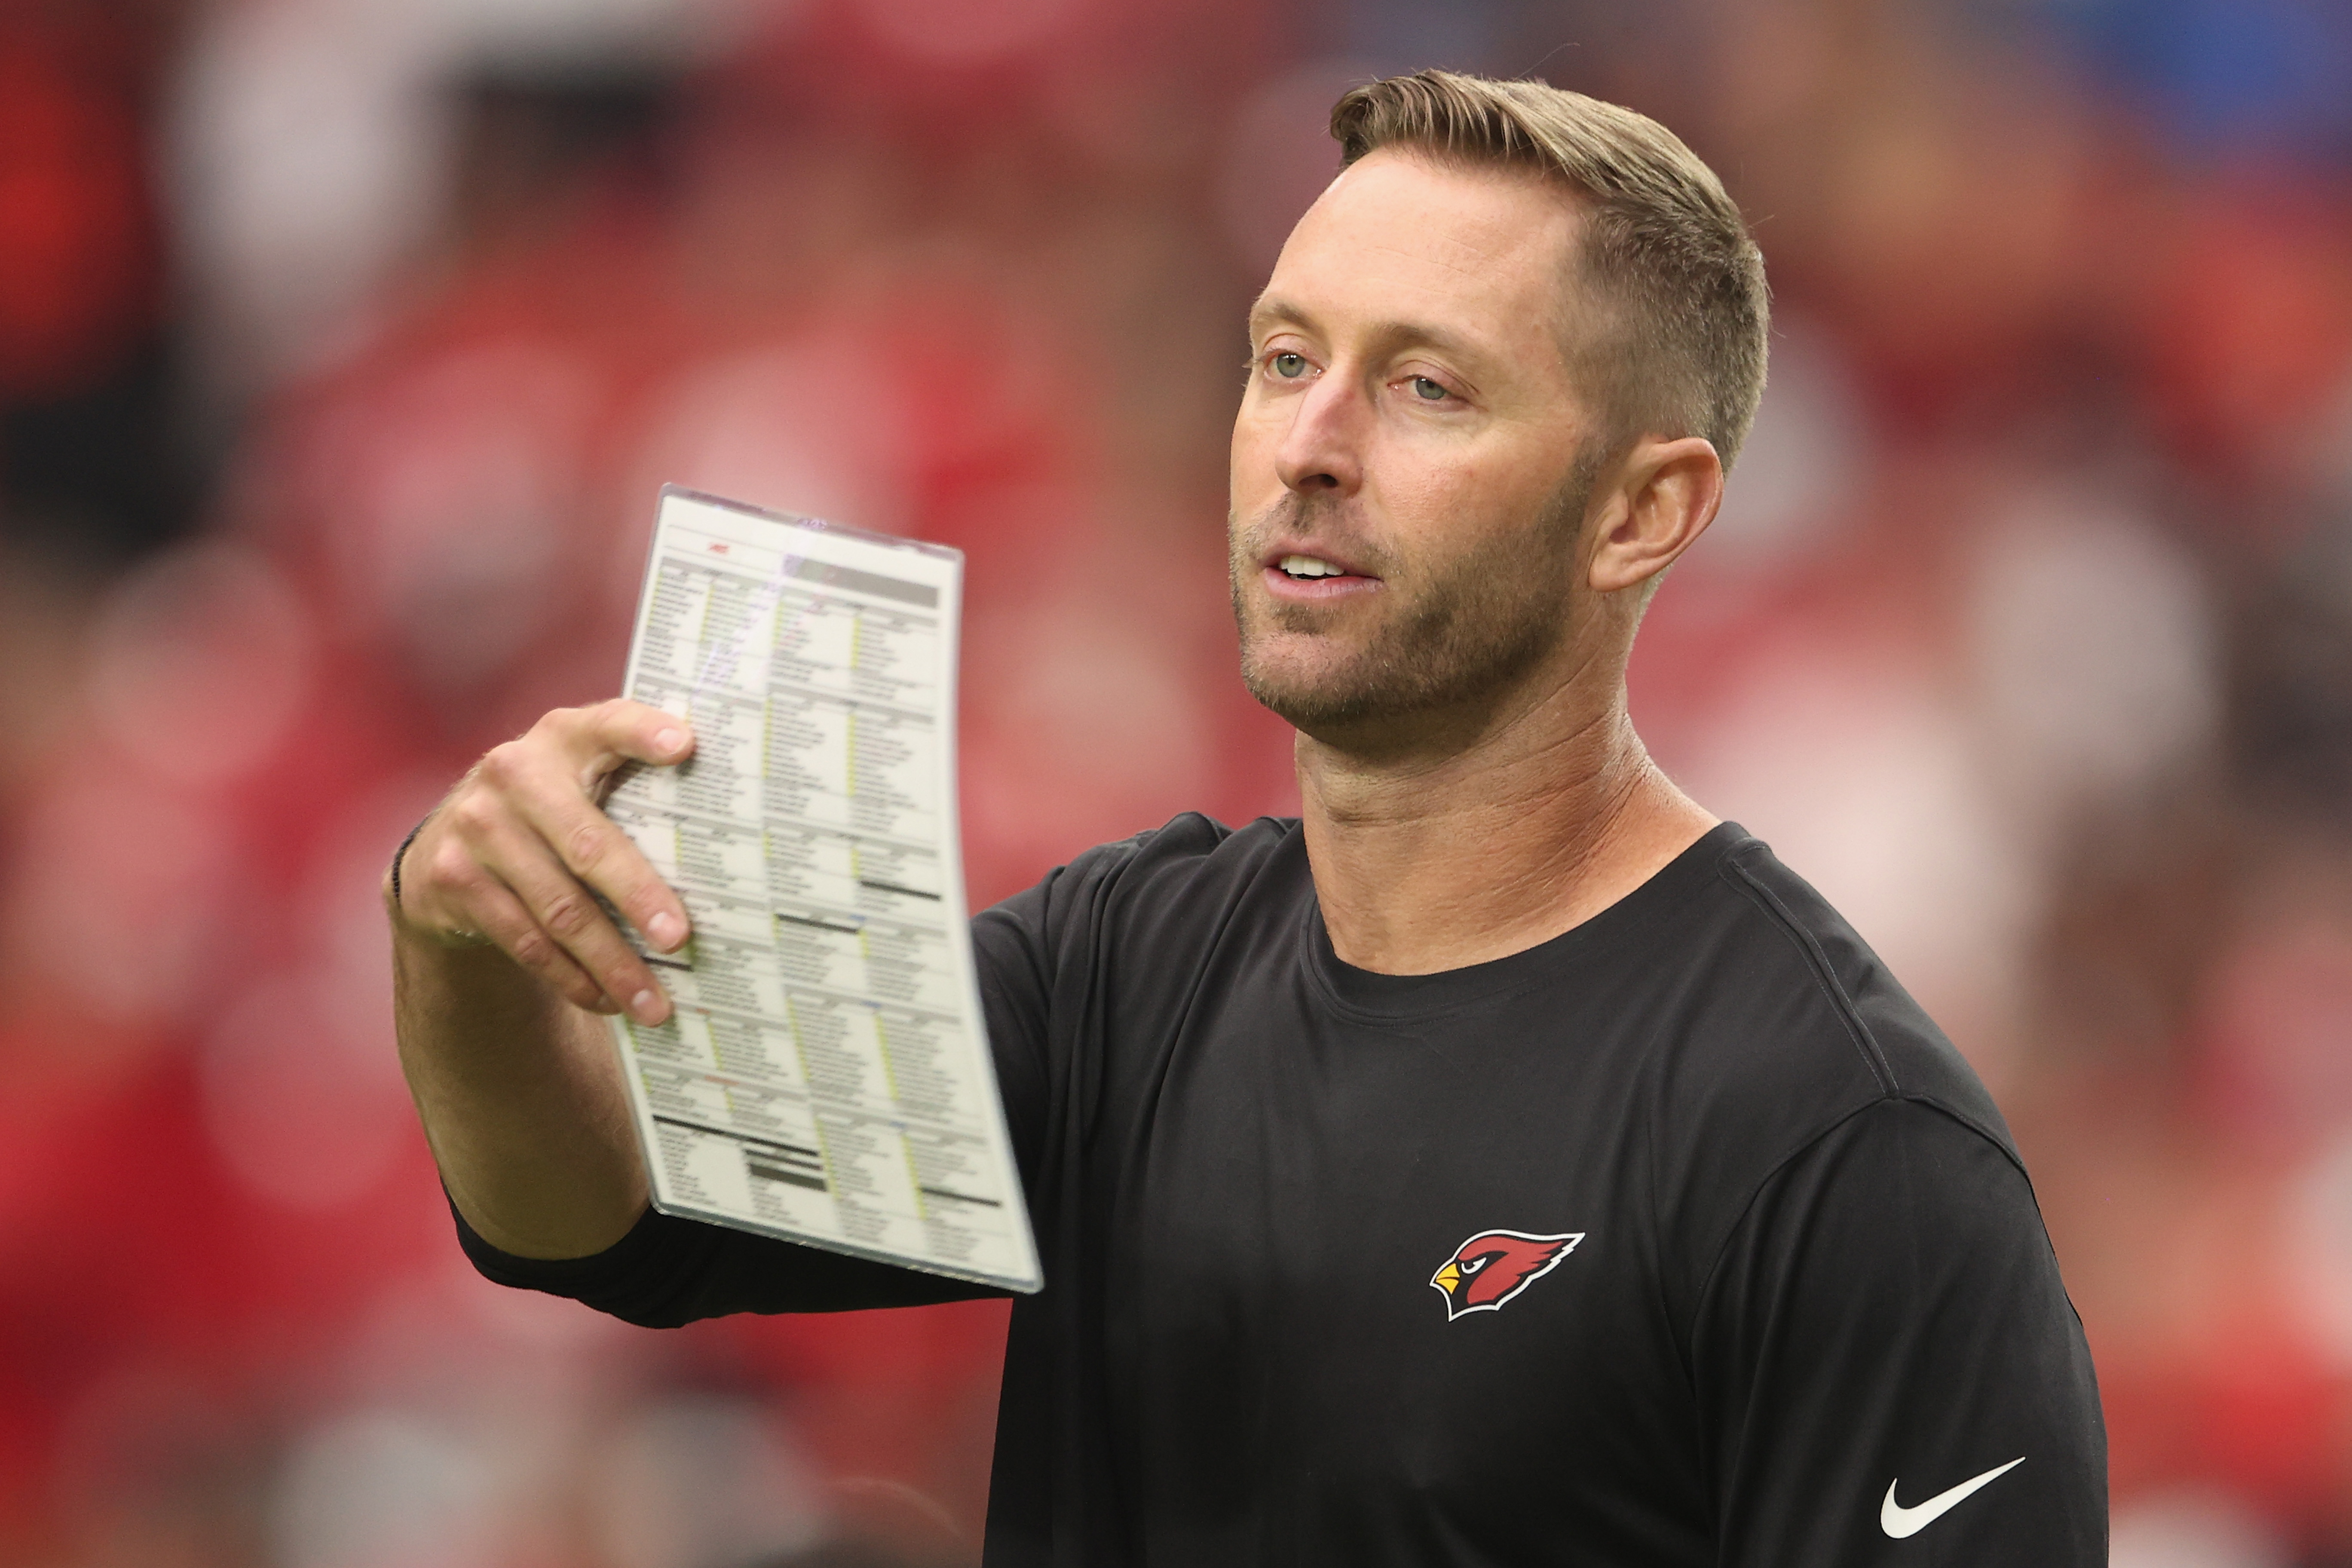 Head coach Kliff Kingsbury of the Arizona Cardinals during the NFL game at State Farm Stadium on October 10, 2021 in Glendale, Arizona.